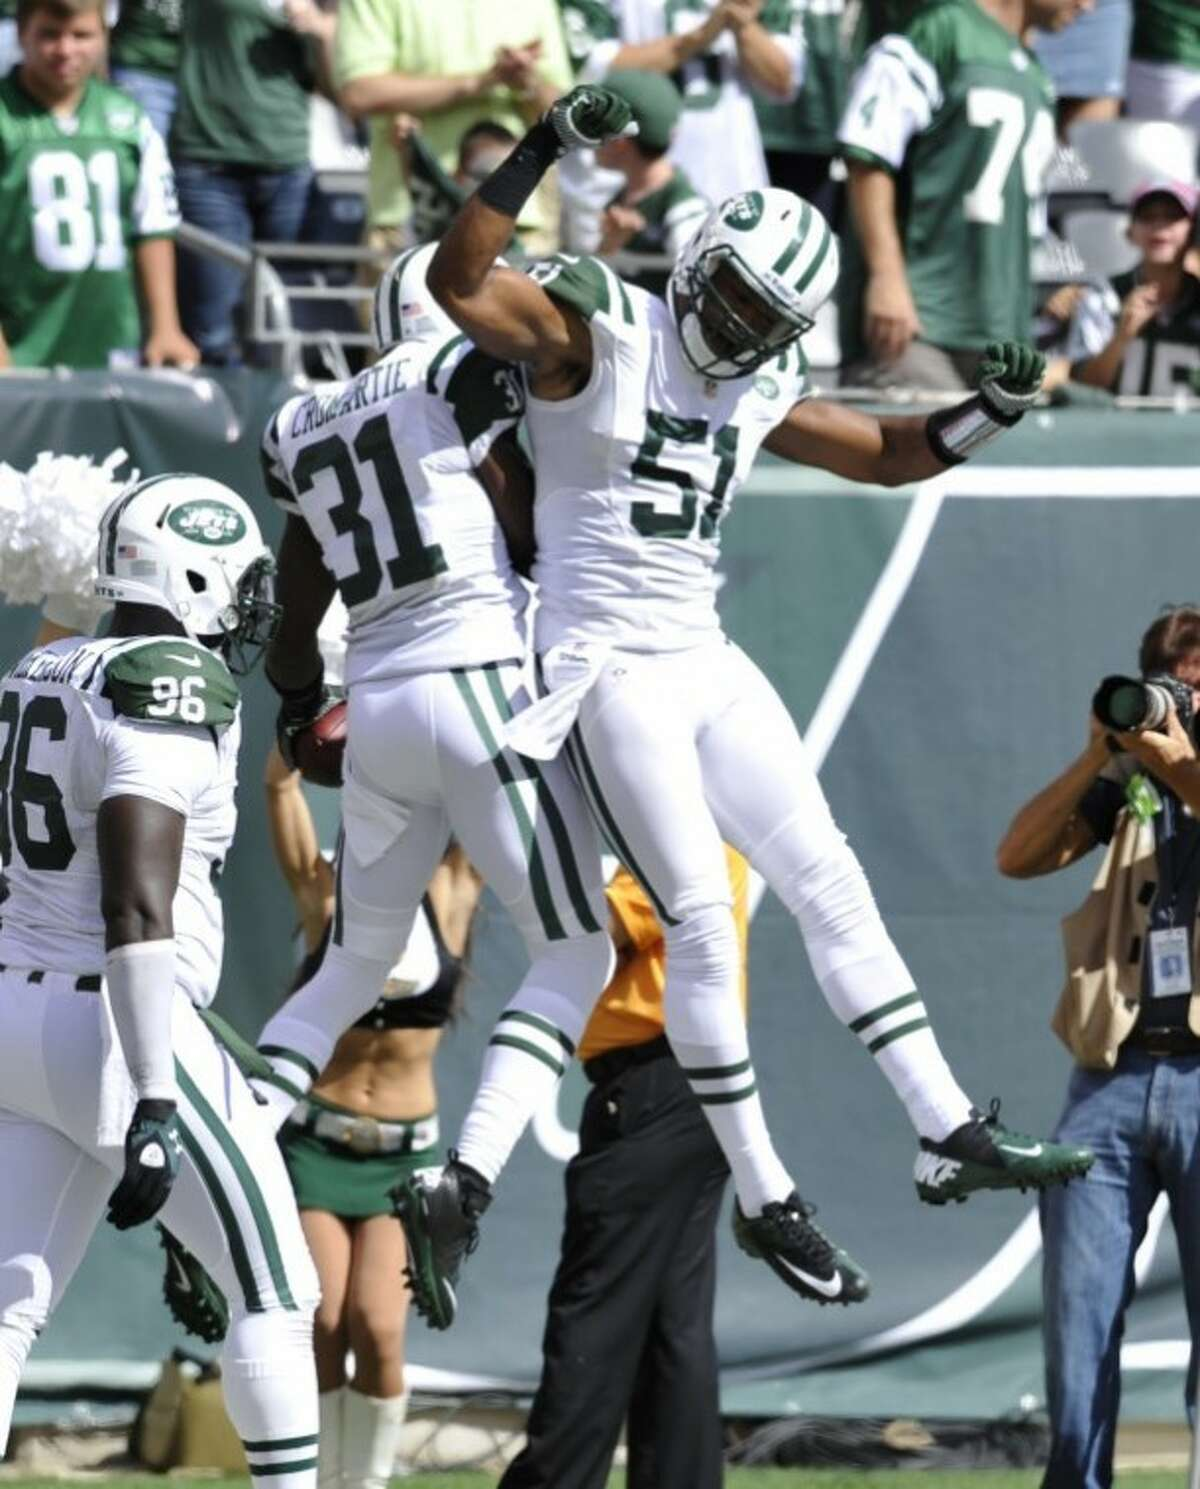 New York Jets cornerback Antonio Cromartie and linebacker Aaron Maybin (510 celebrate during the first half of an NFL football game between the New York Jets and the Buffalo Bills at MetLife Stadium Sunday, Sept. 9, 2012, in East Rutherford, N.J. (AP Photo/Bill Kostroun)